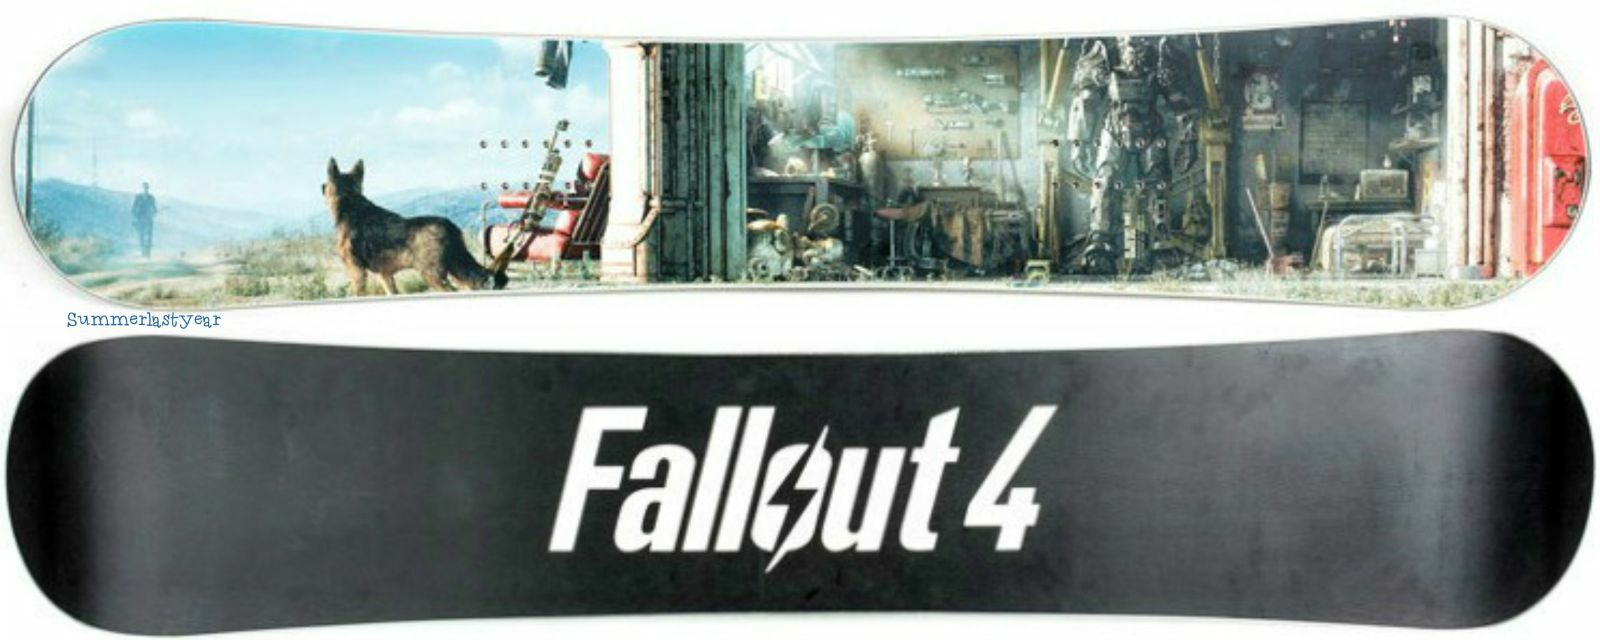 FALLOUT 4  GARAGE   ALL MOUNTAIN FREESTYLE SNOWBOARD  LIMITED EDITION MODEL 153  designer online